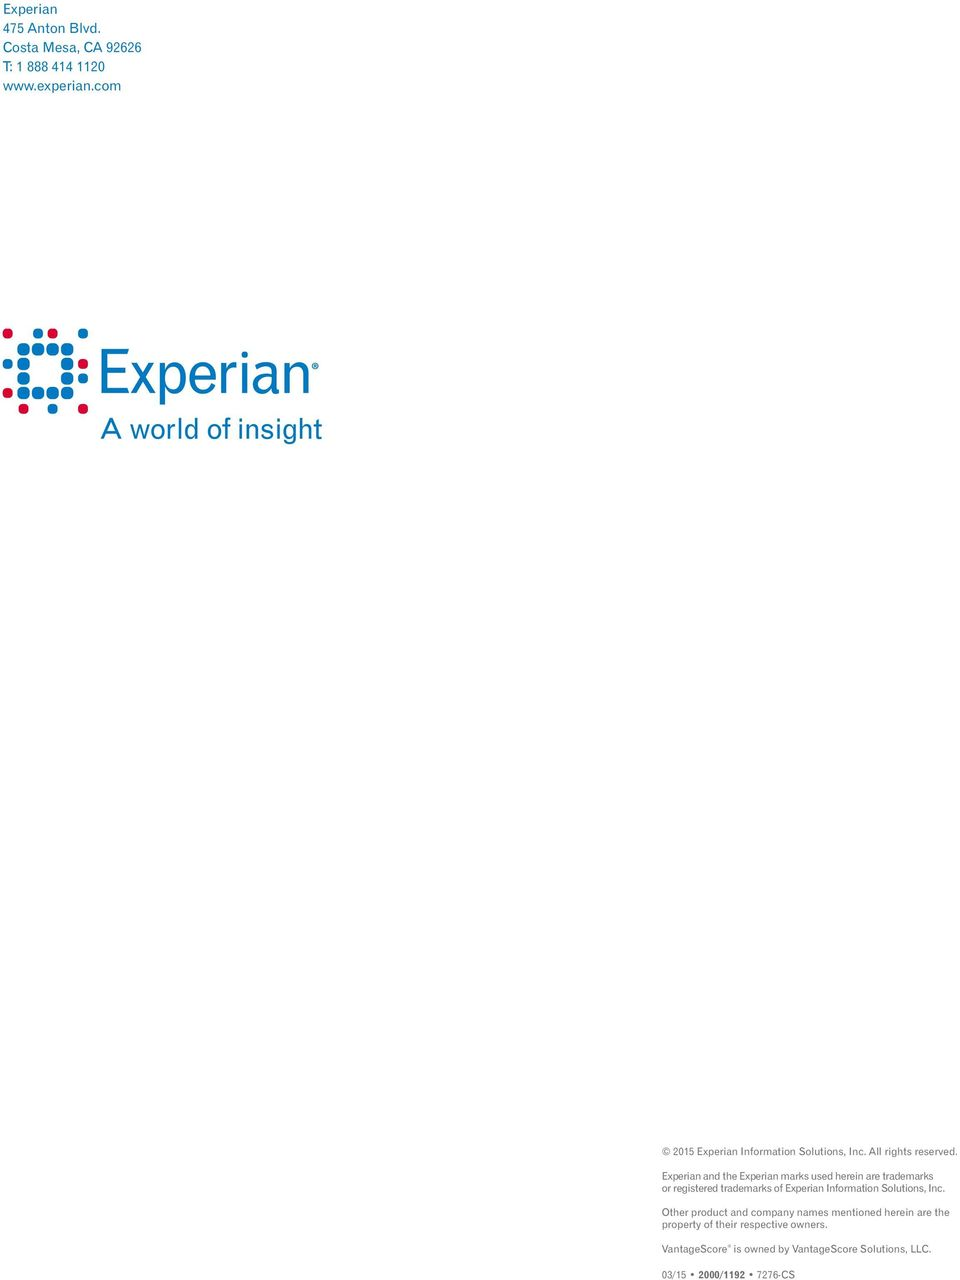 Experian and the Experian marks used herein are trademarks or registered trademarks of Experian Information